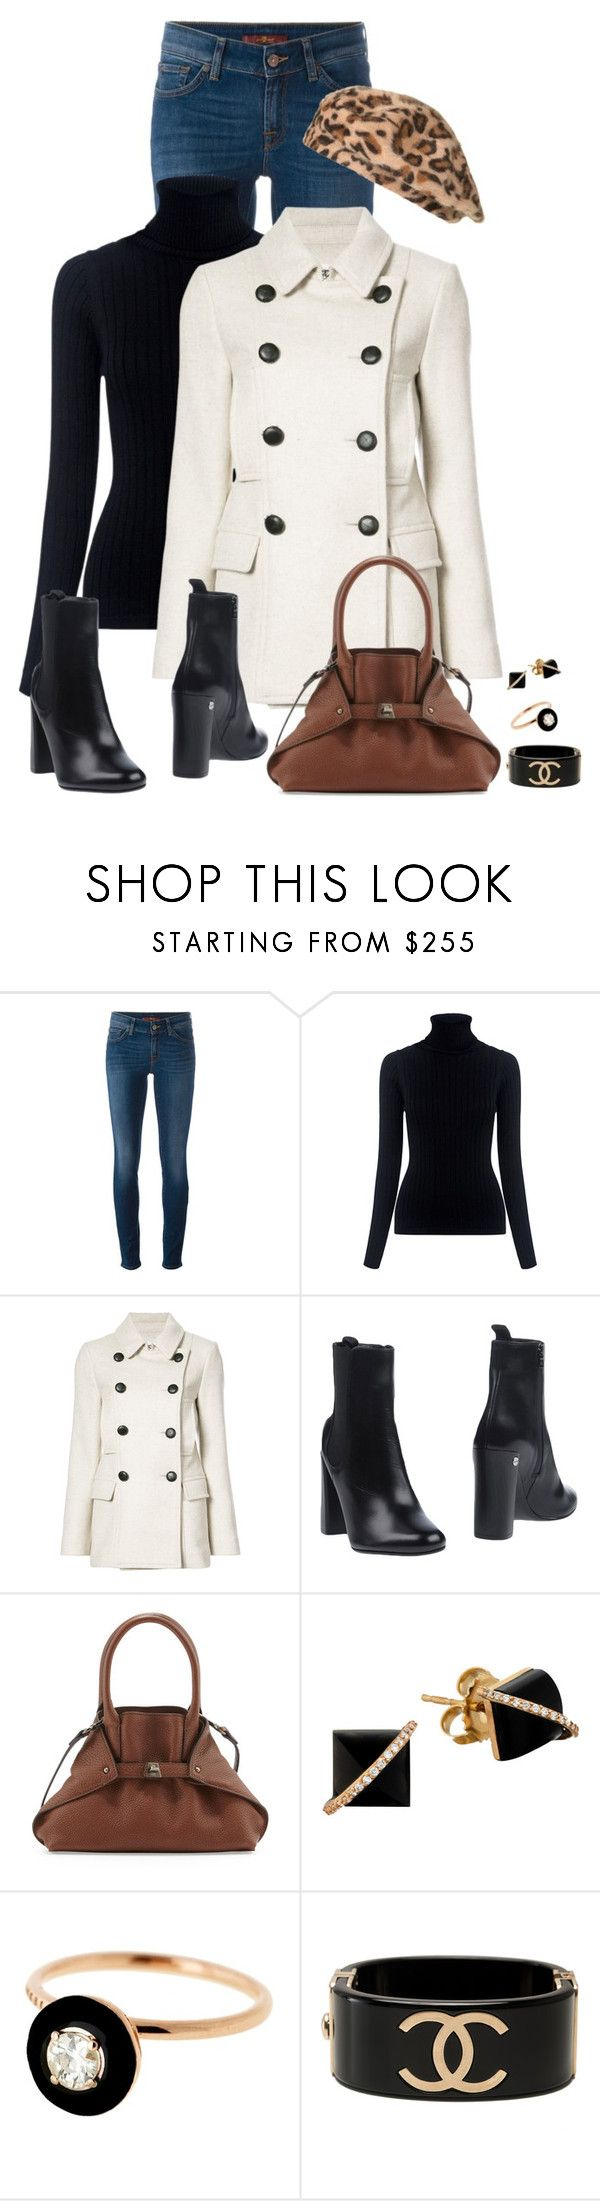 """""""Leopard Beret (Outfit Only)"""" by fashionaddicta9 ❤ liked on Polyvore featuring 7 For All Mankind, M.i.h Jeans, Étoile Isabel Marant, Neil Barrett, Akris, Madyha Farooqui, Selim Mouzannar and Chanel"""